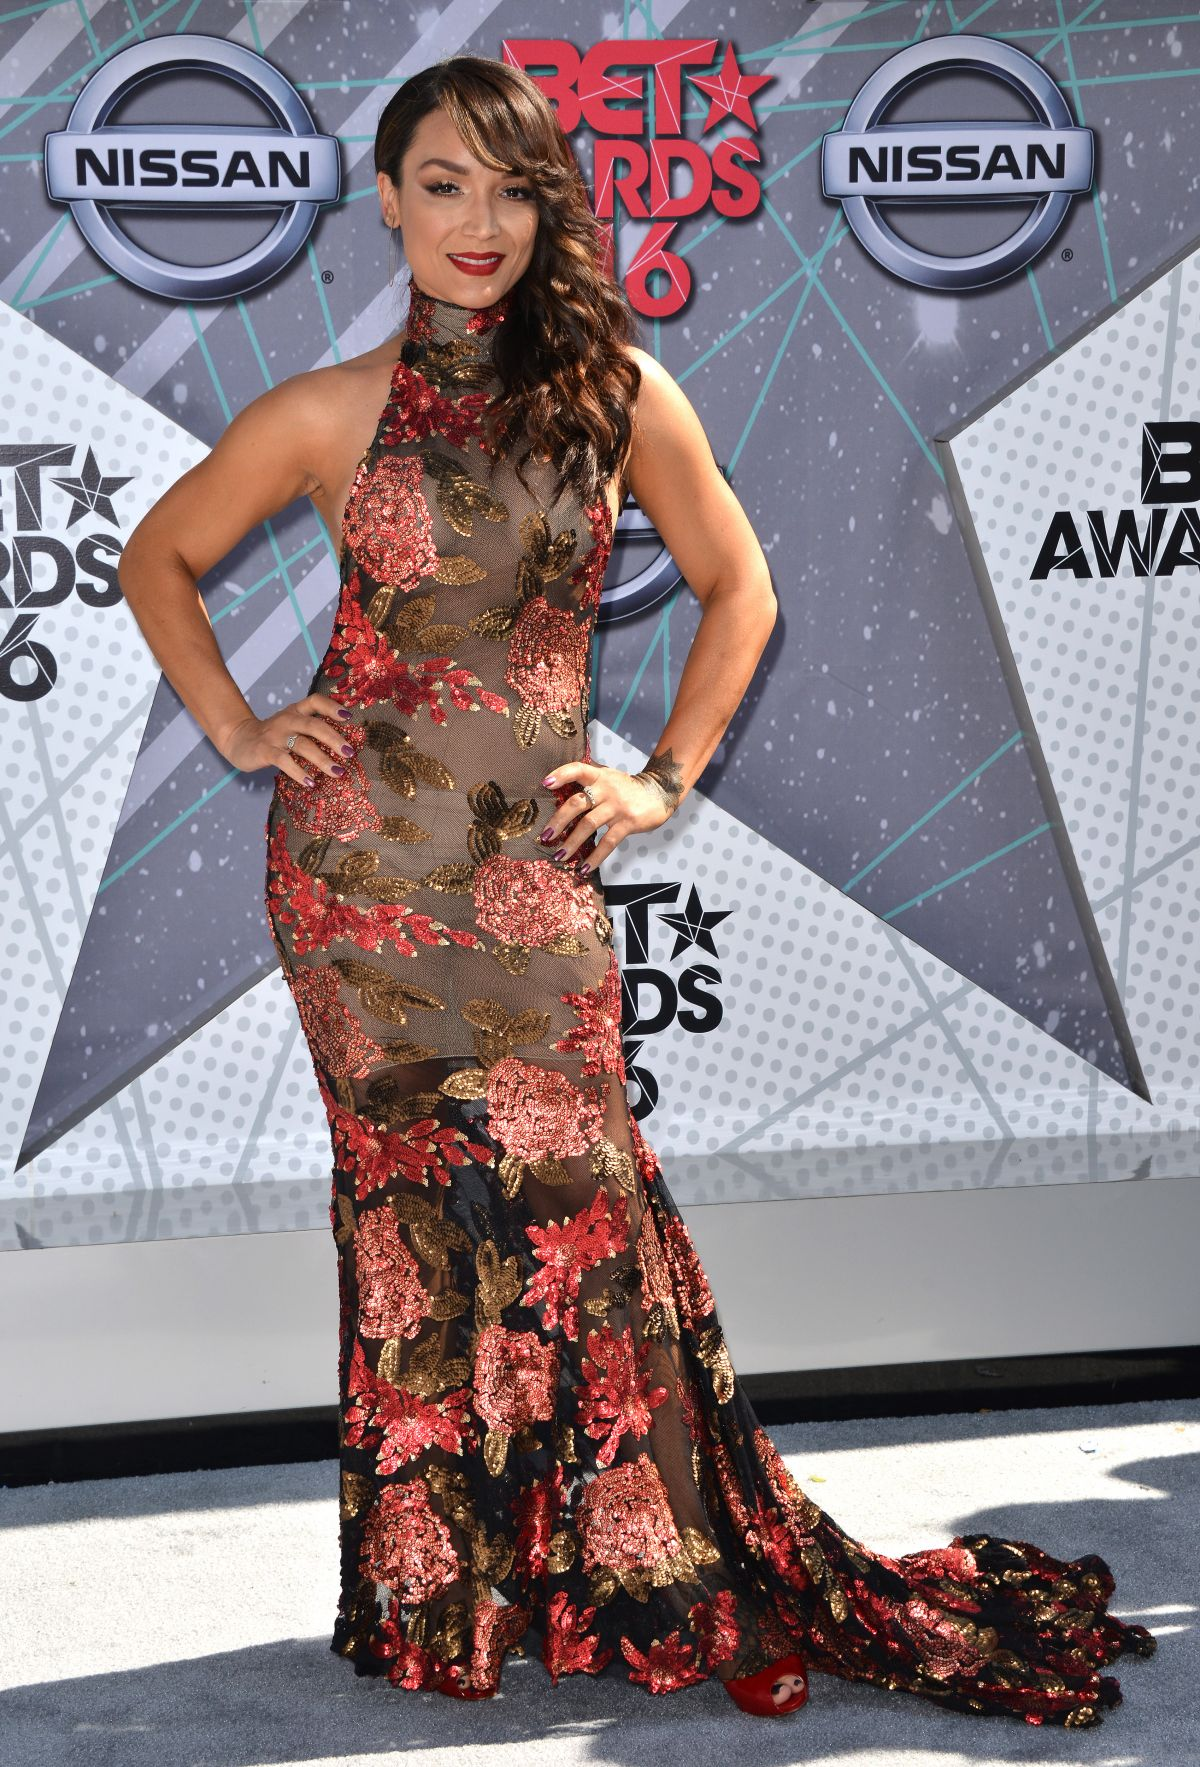 MAYTE GARCIA at 2016 BET Awards in Los Angeles 06/26/2016